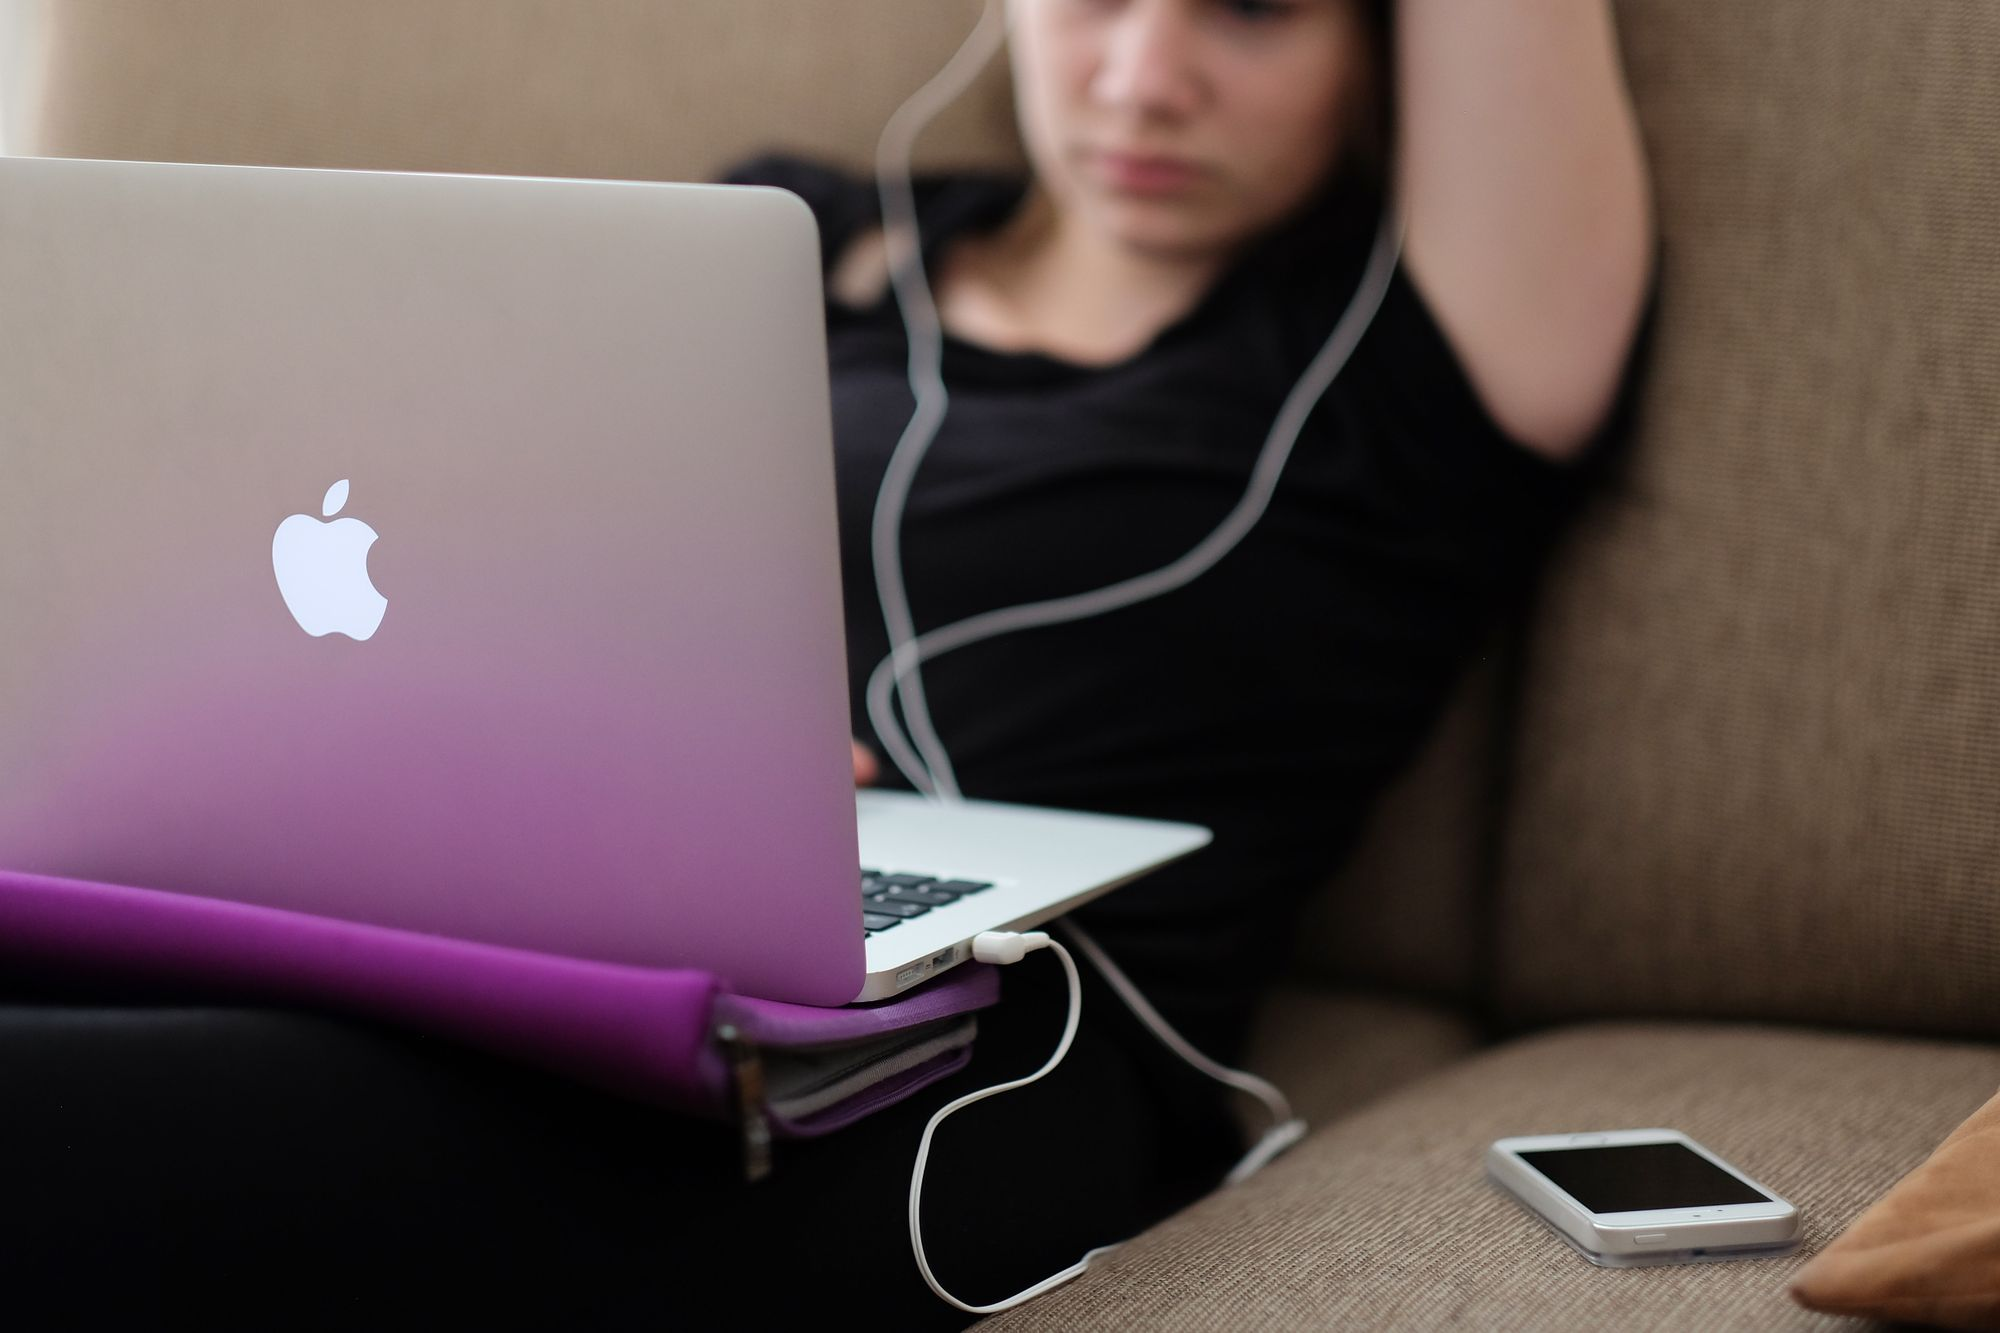 A teen sits alone on the sofa, watching porn on her laptop with her headphones in.